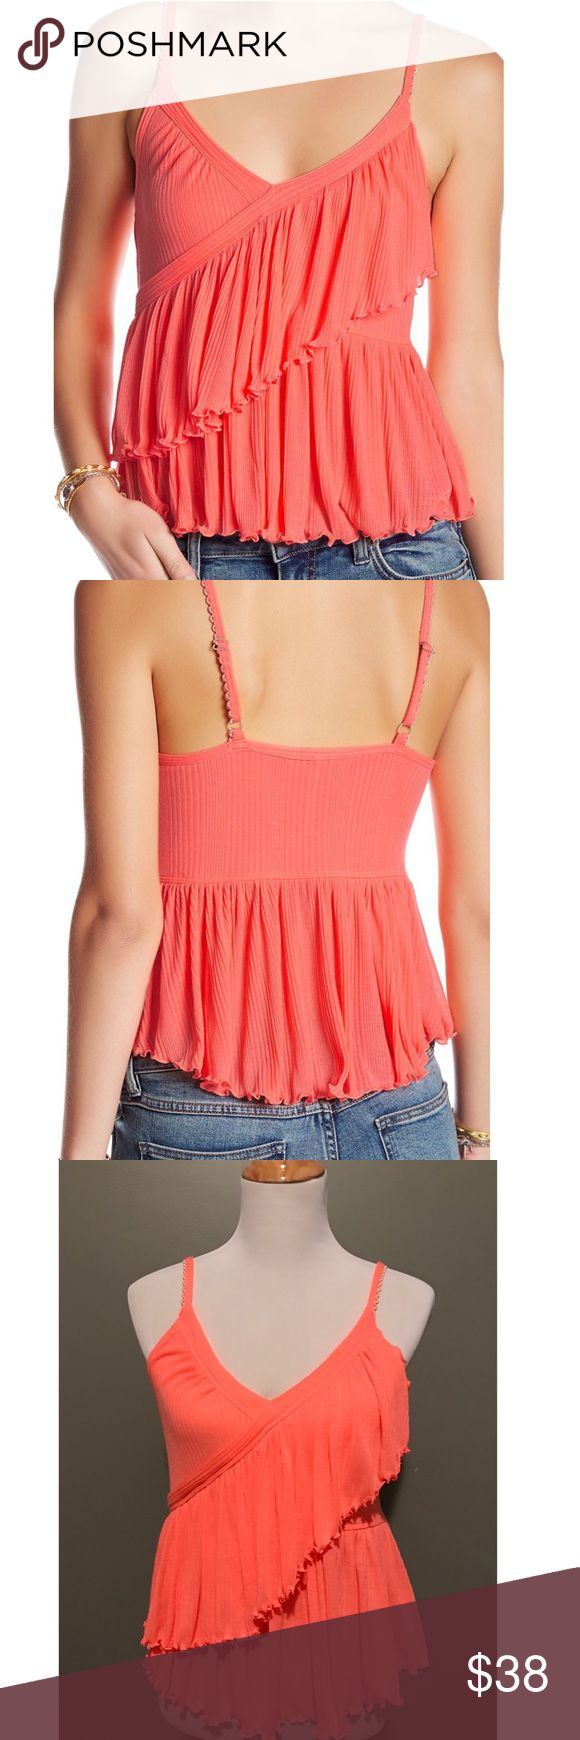 """NWOT Free People Ruffled Tiered Top - Adorable, vibrant pinkish Coral Tank be Free People.                                                                         - V-neck - Sleeveless - Scalloped adjustable straps - Tiered ruffle popover - Floral print - Ribbed construction - Approx. 22"""" length - Imported Fiber Content 100% polyester Free People Tops Tank Tops"""